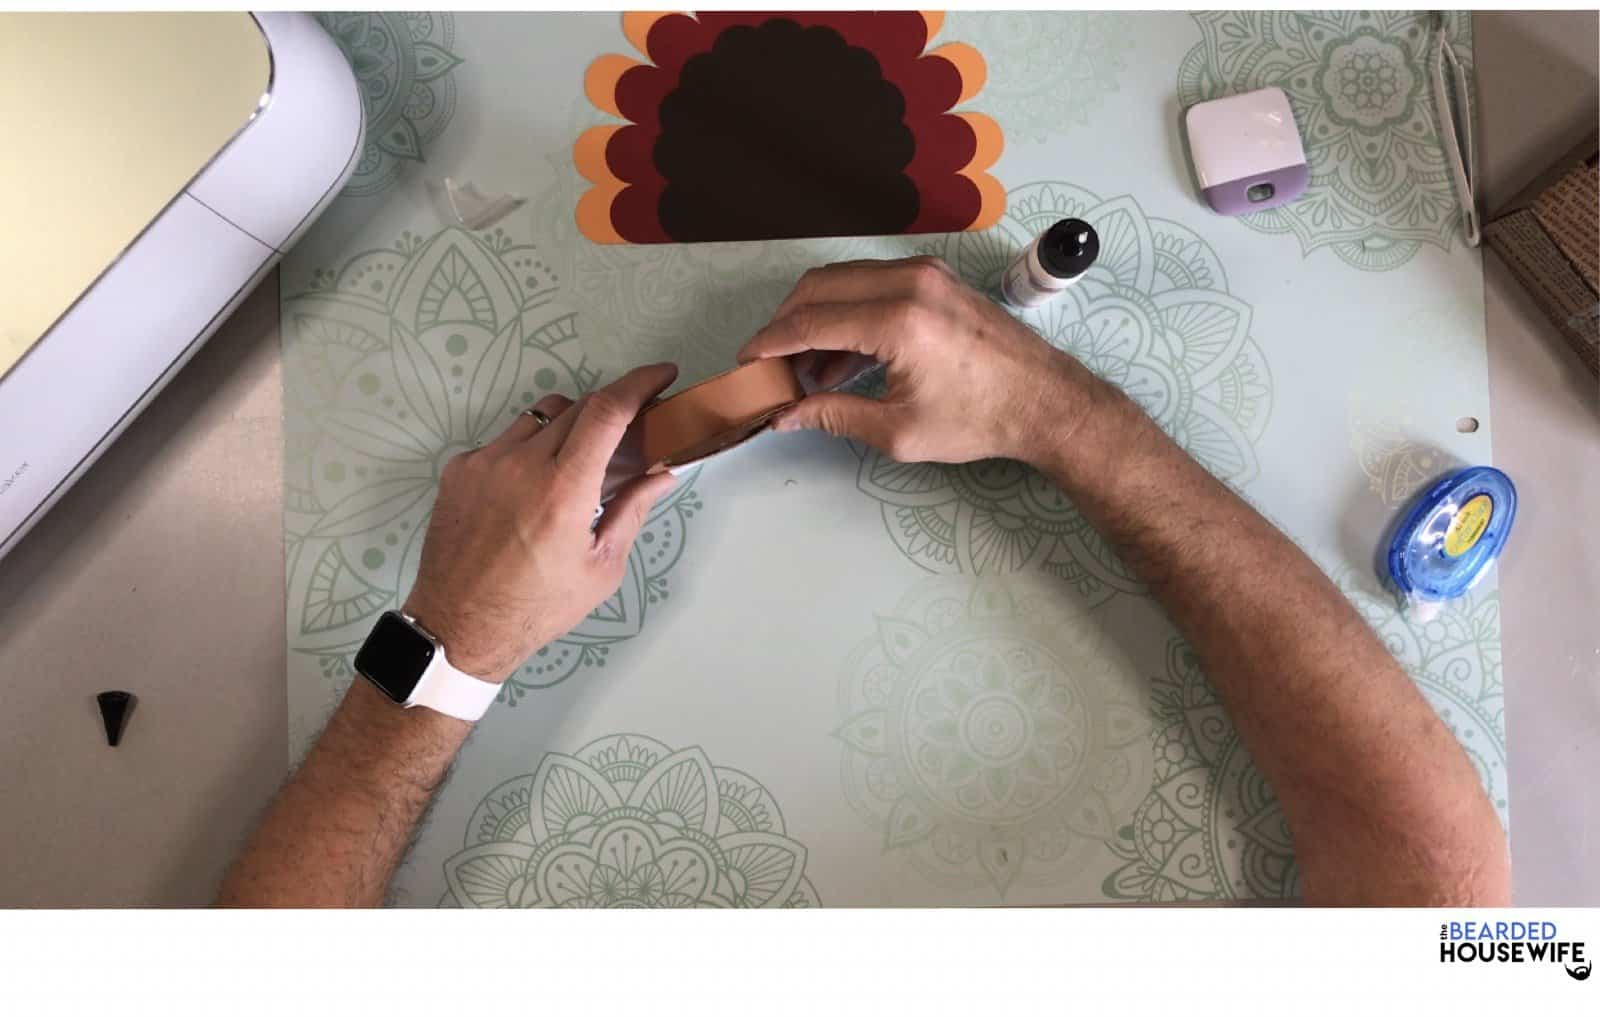 carefully press the turkey into the glue